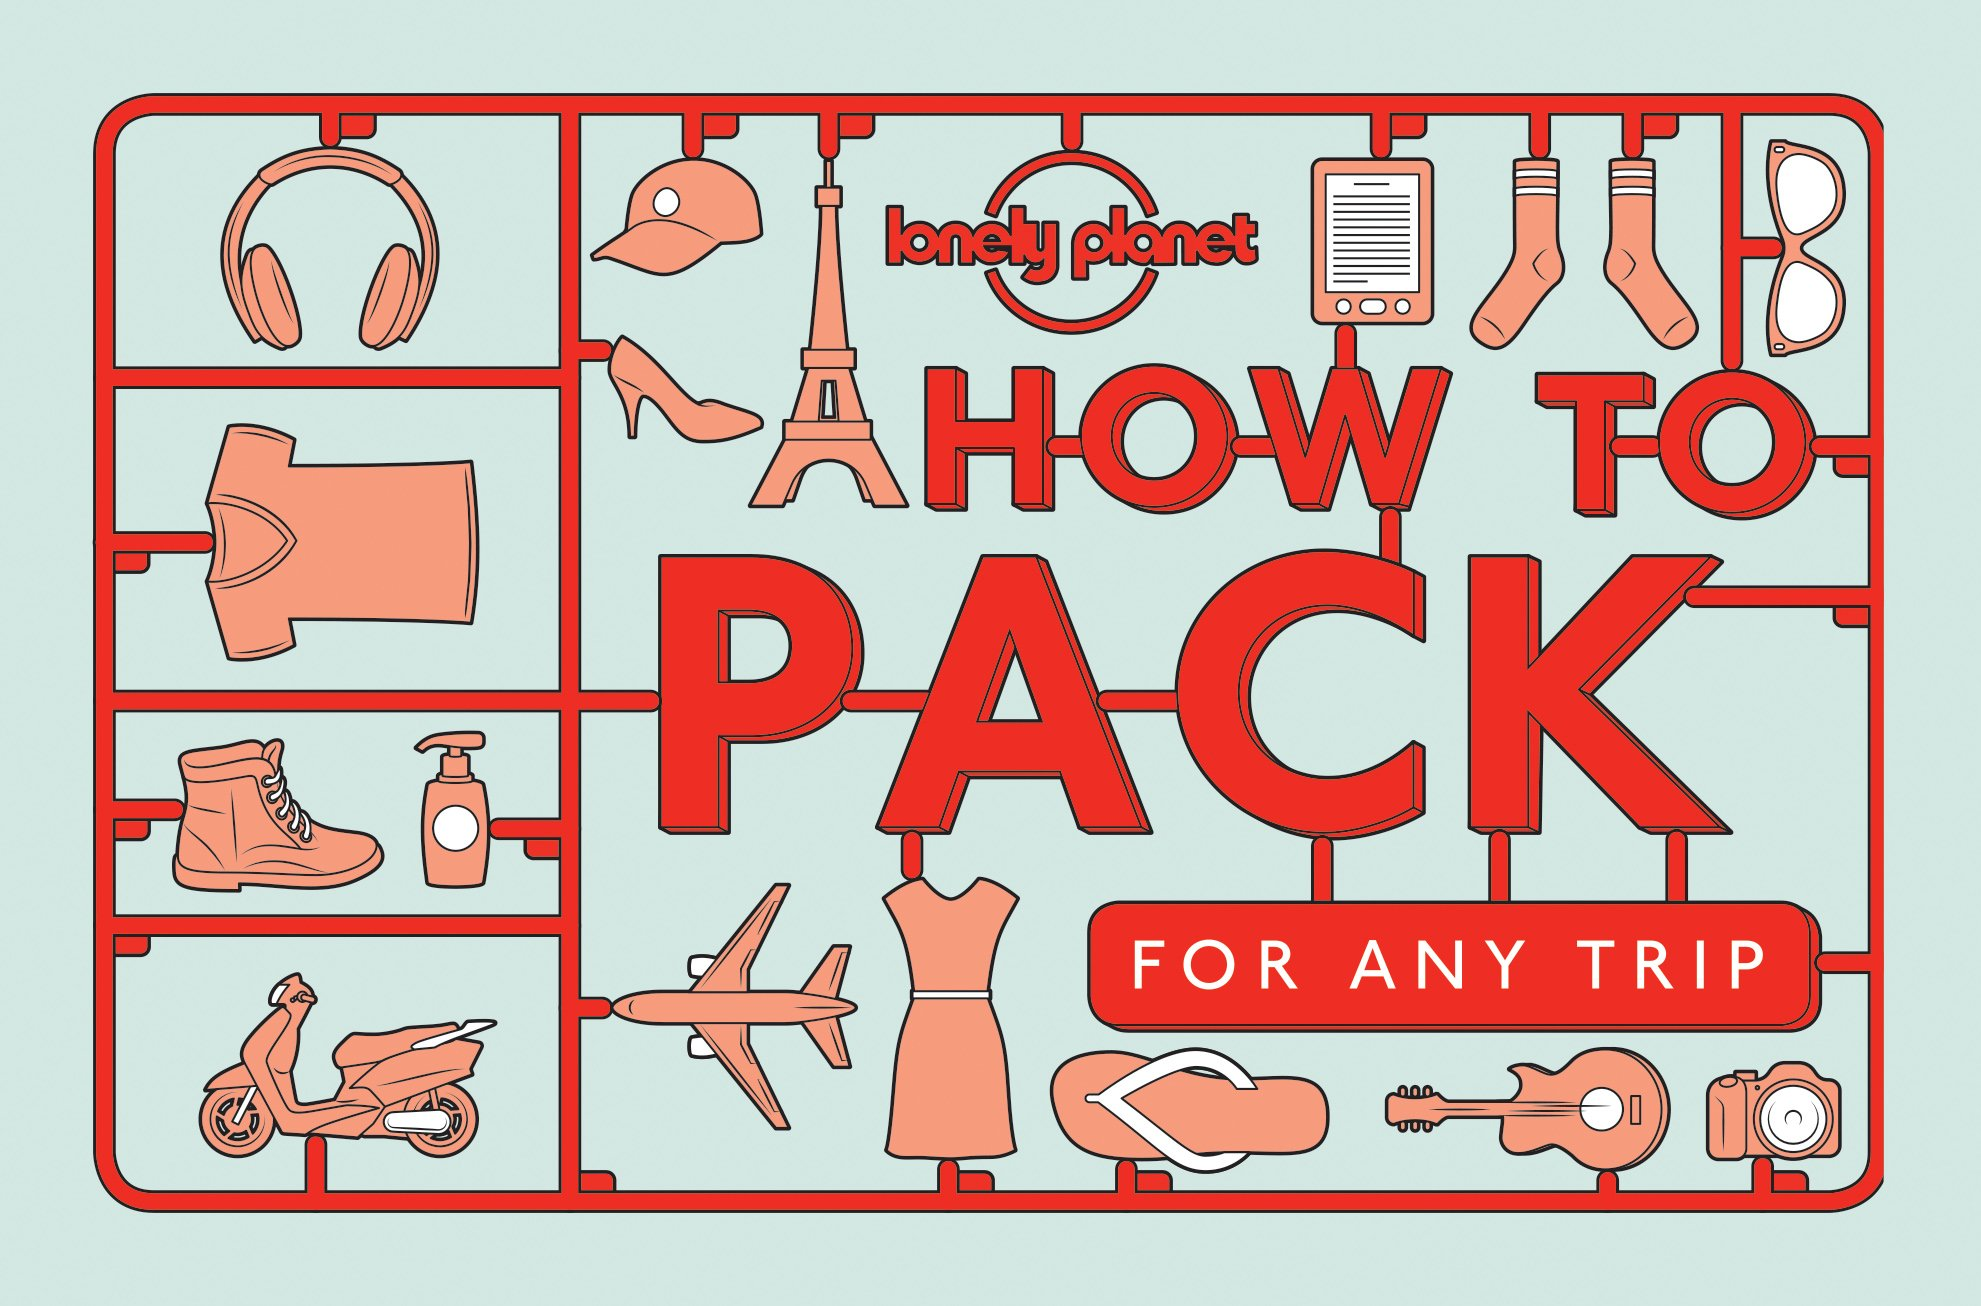 How to Pack for Any Trip (Lonely Planet) pdf